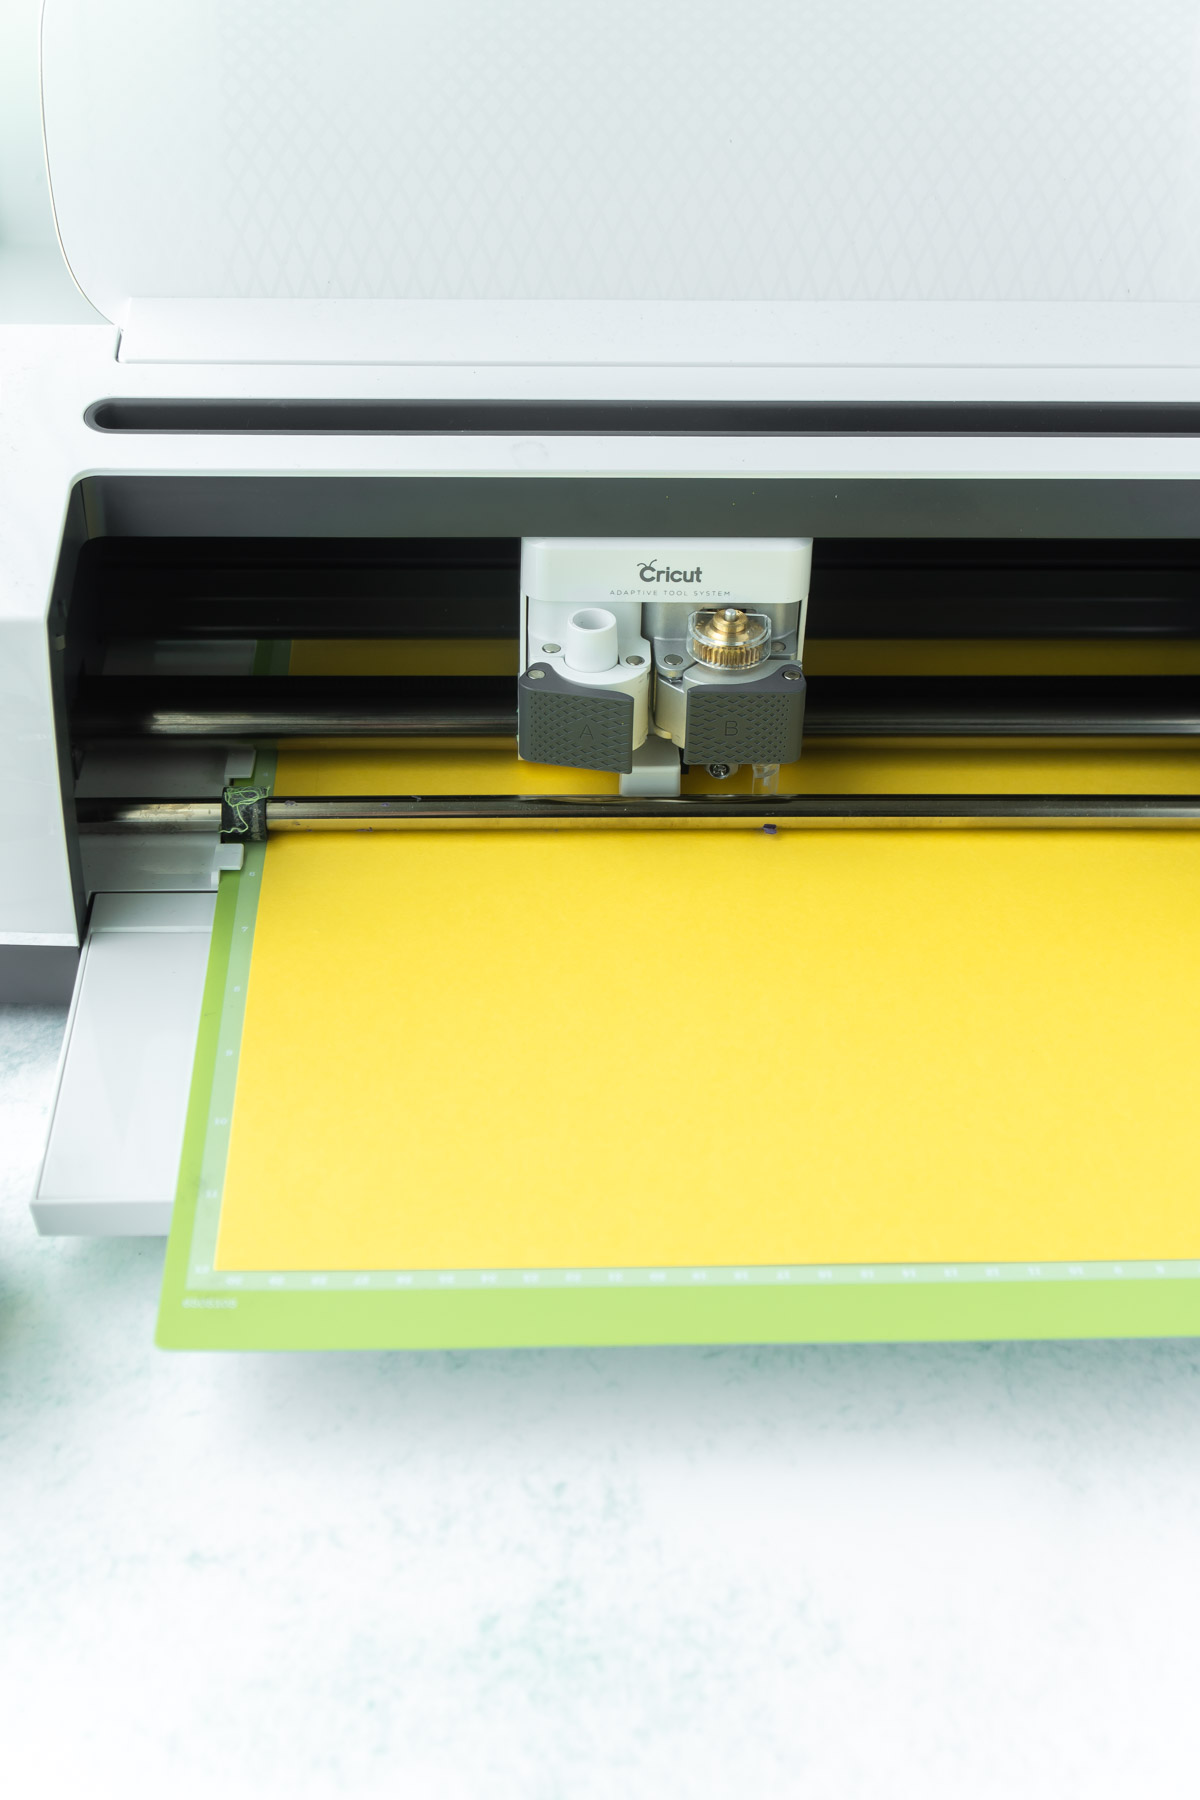 Cricut Maker loaded with yellow card stock